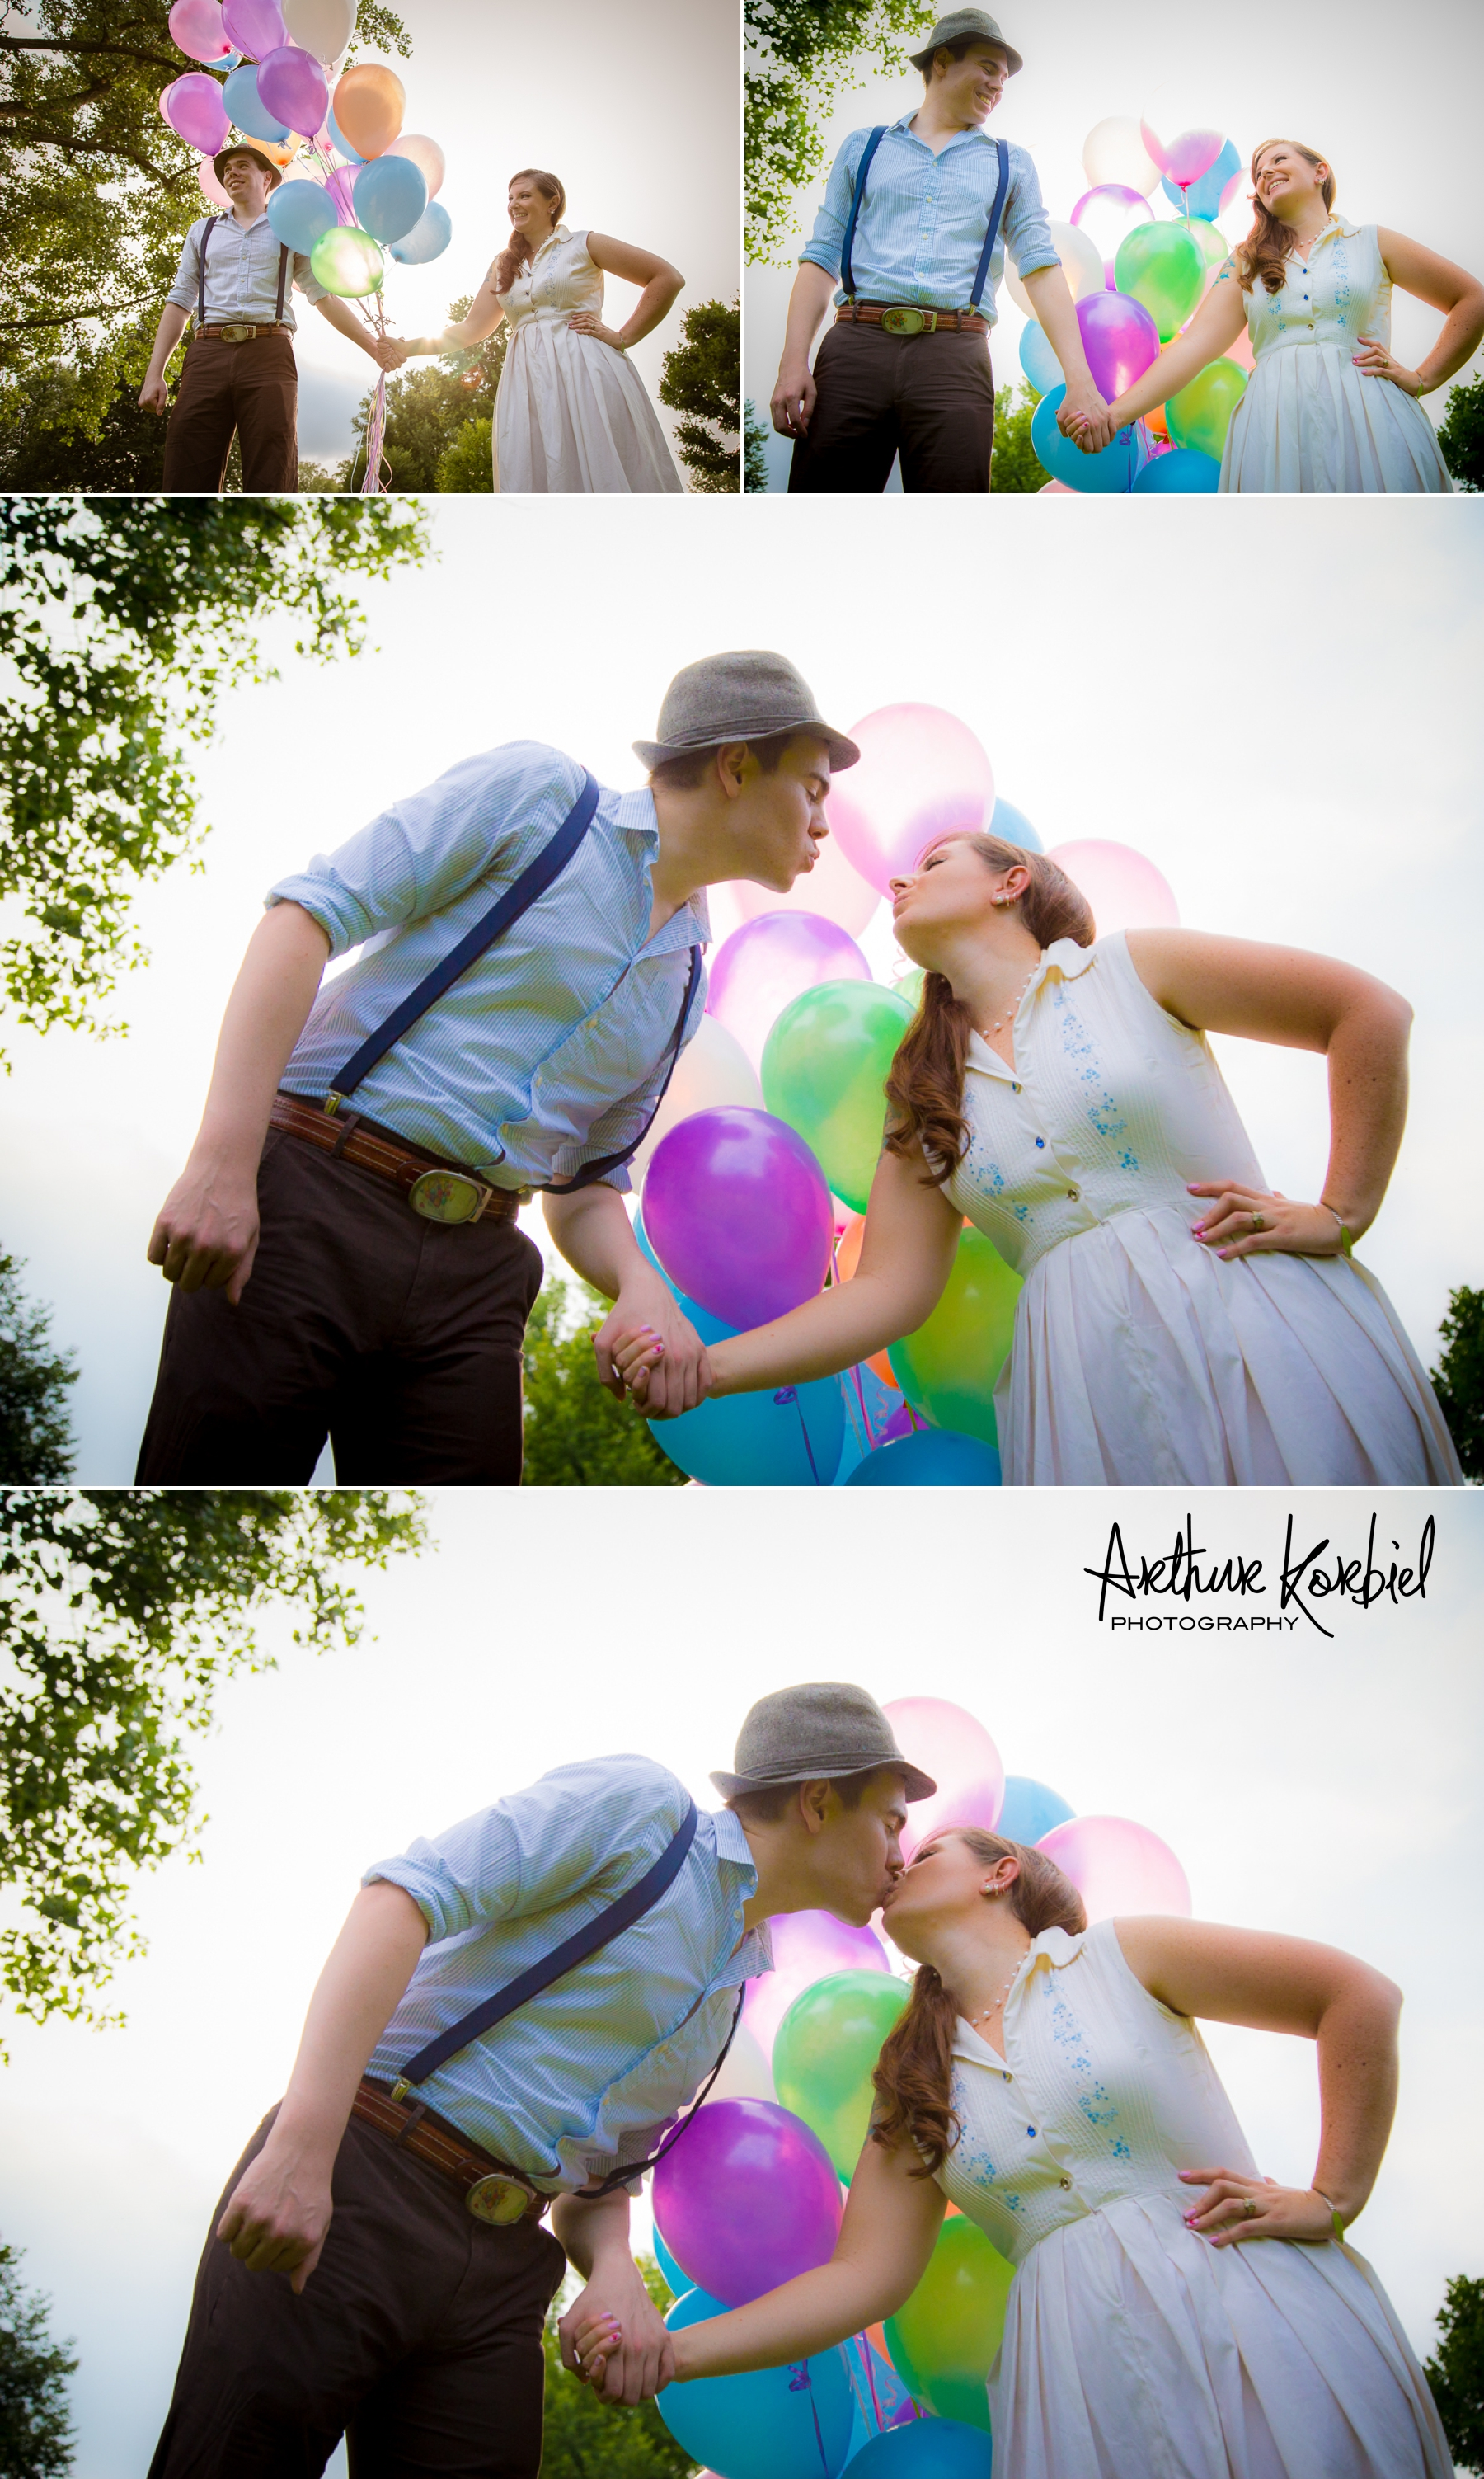 Arthur Korbiel Photography - London Engagement Wedding Photographer - Vintage - Bag Lady Variety - Gibbons Park_013.jpg